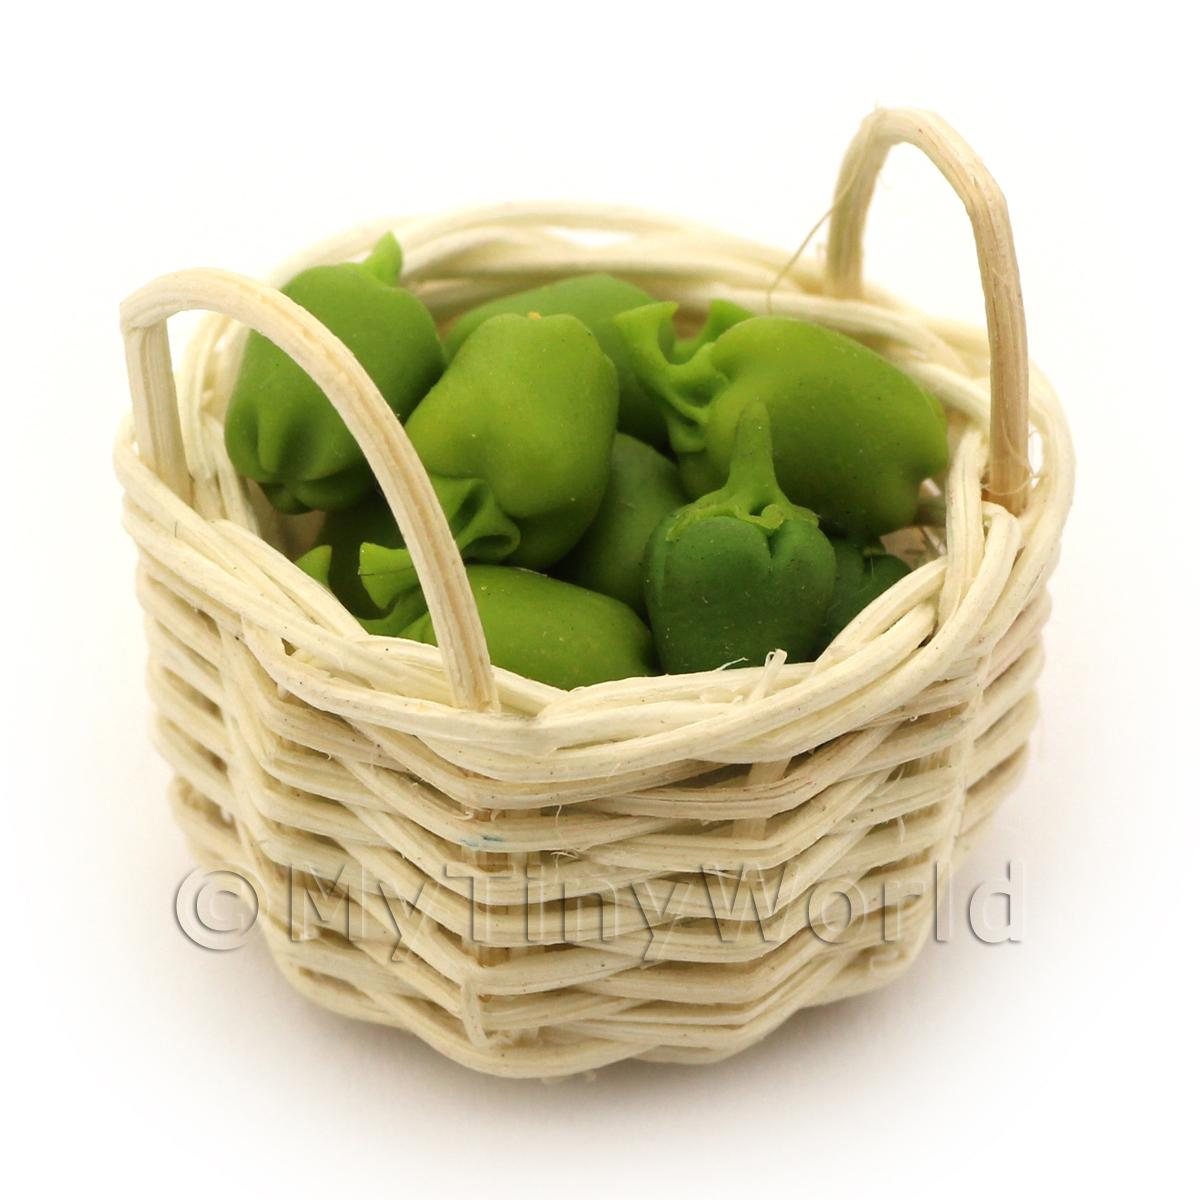 Dolls House Miniature Basket of Hand Made Green Bell Peppers